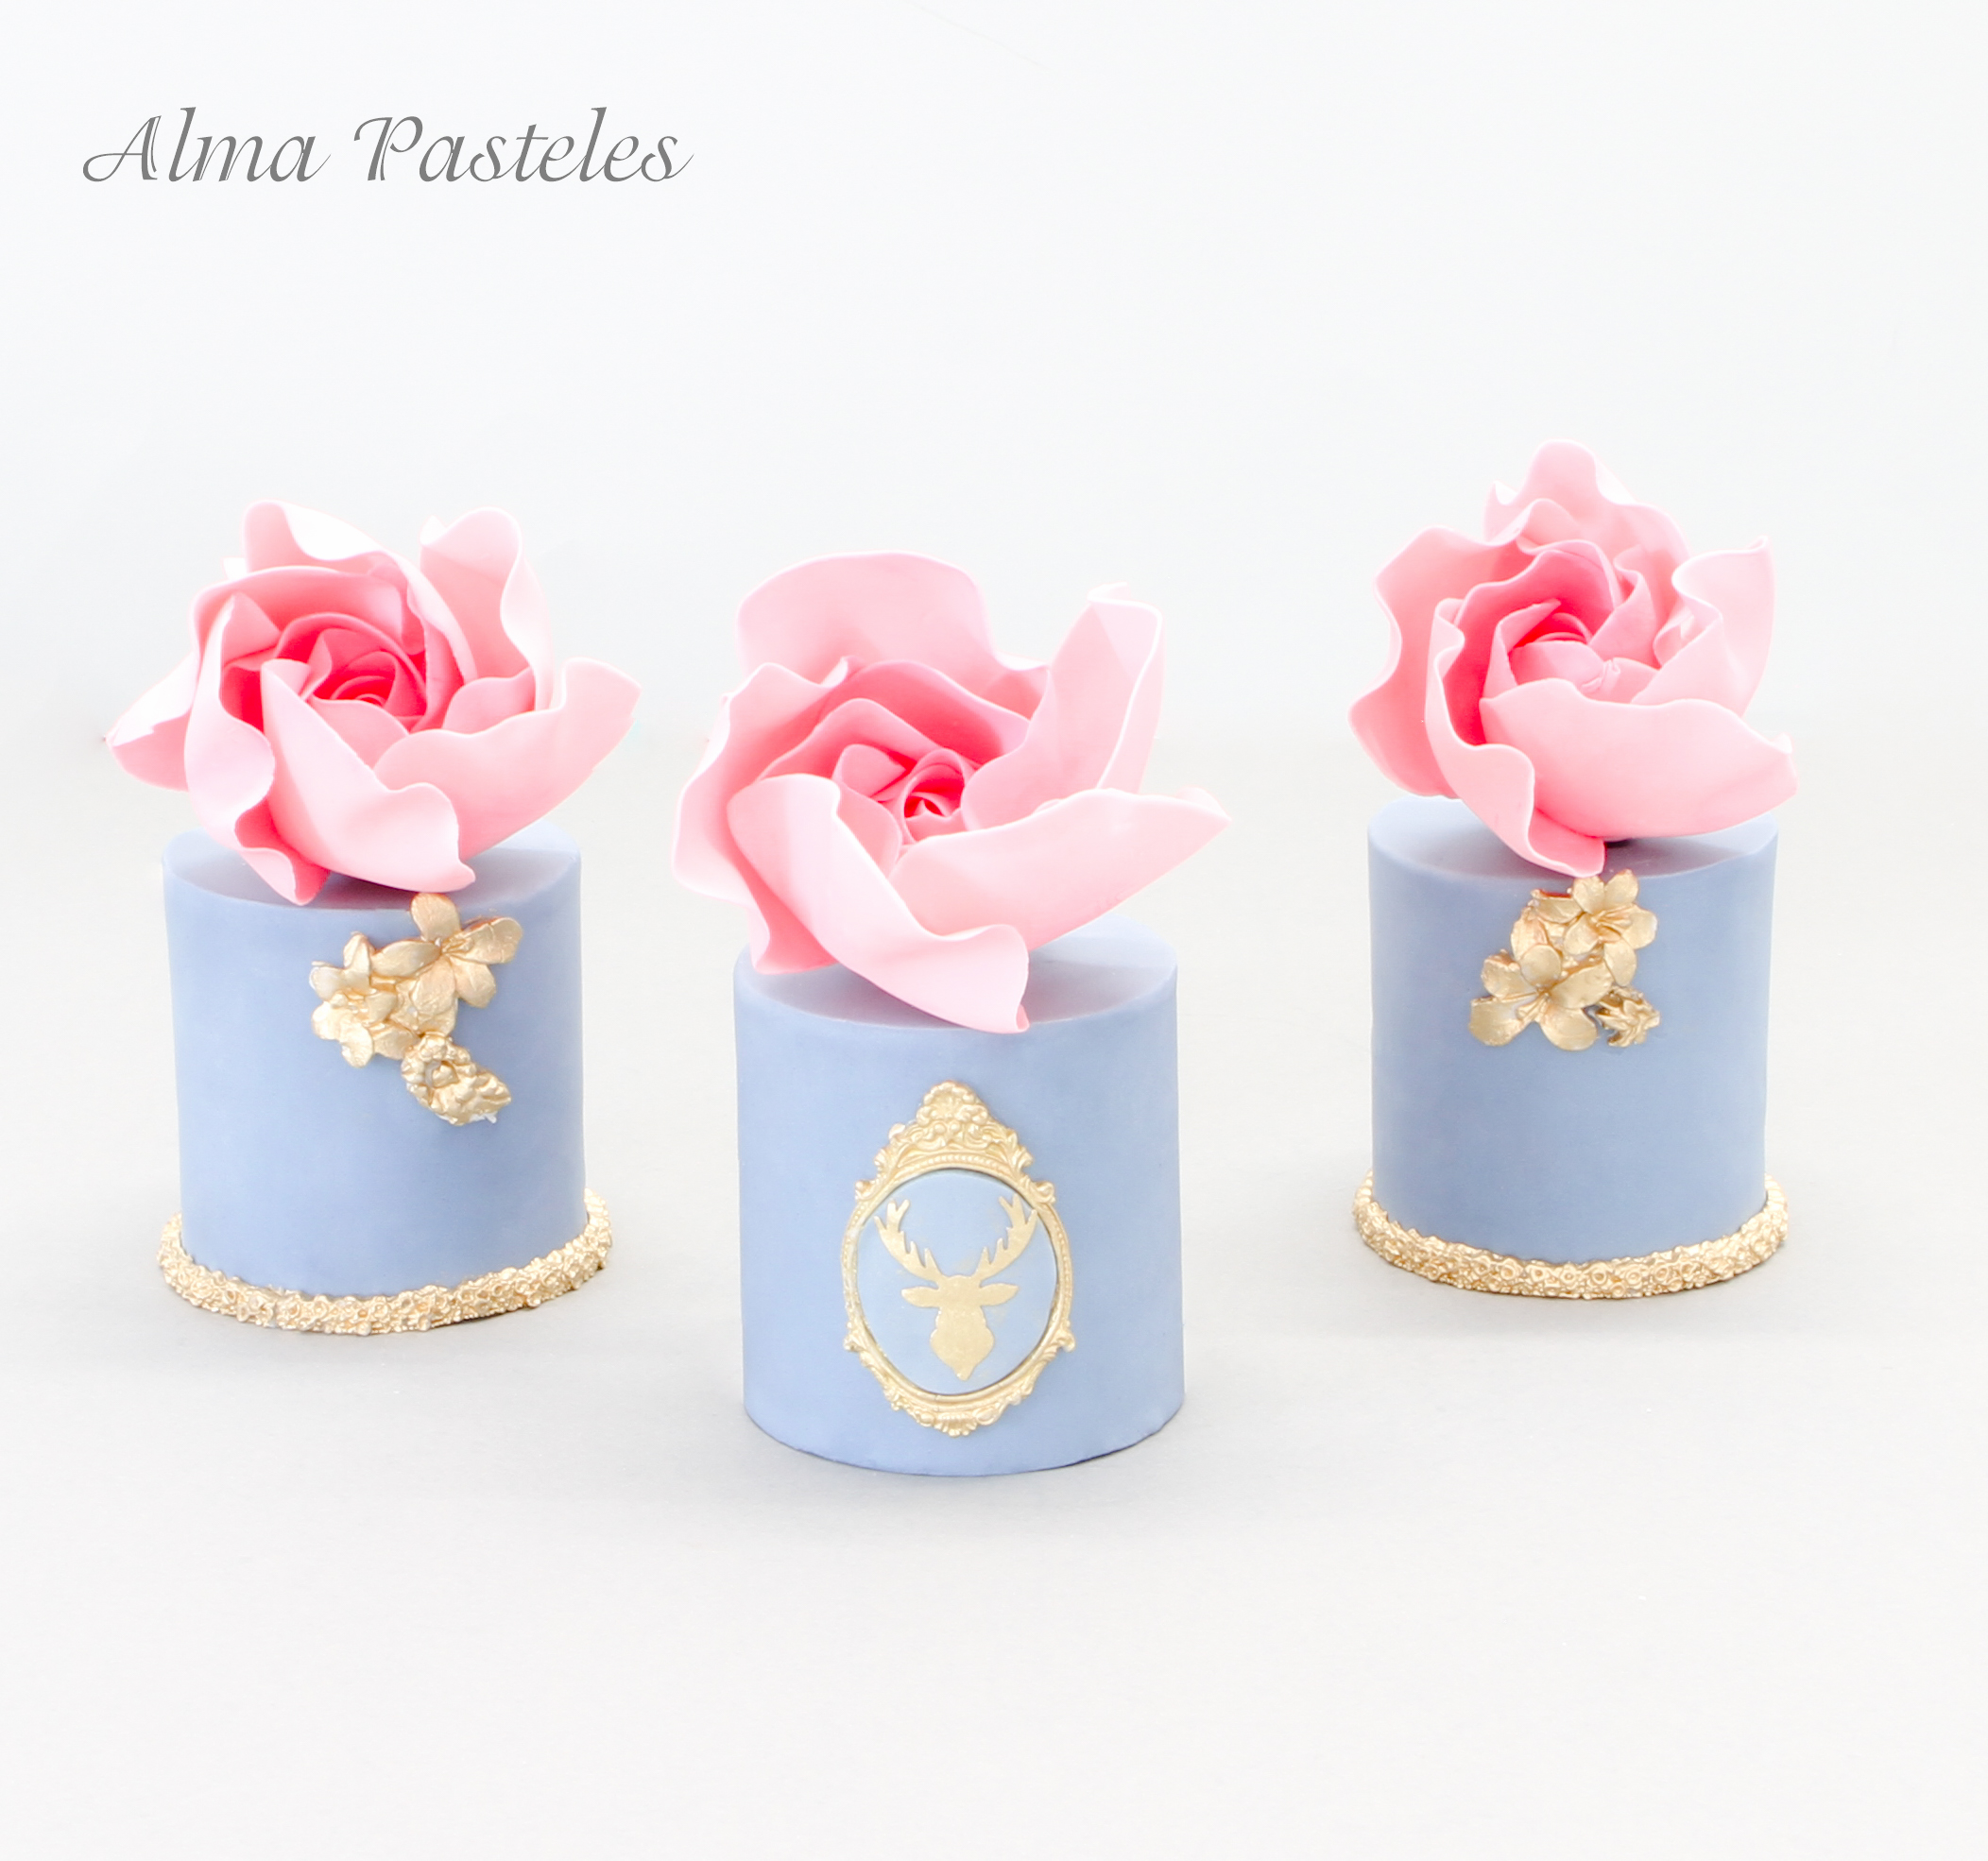 Baby blue petite fours